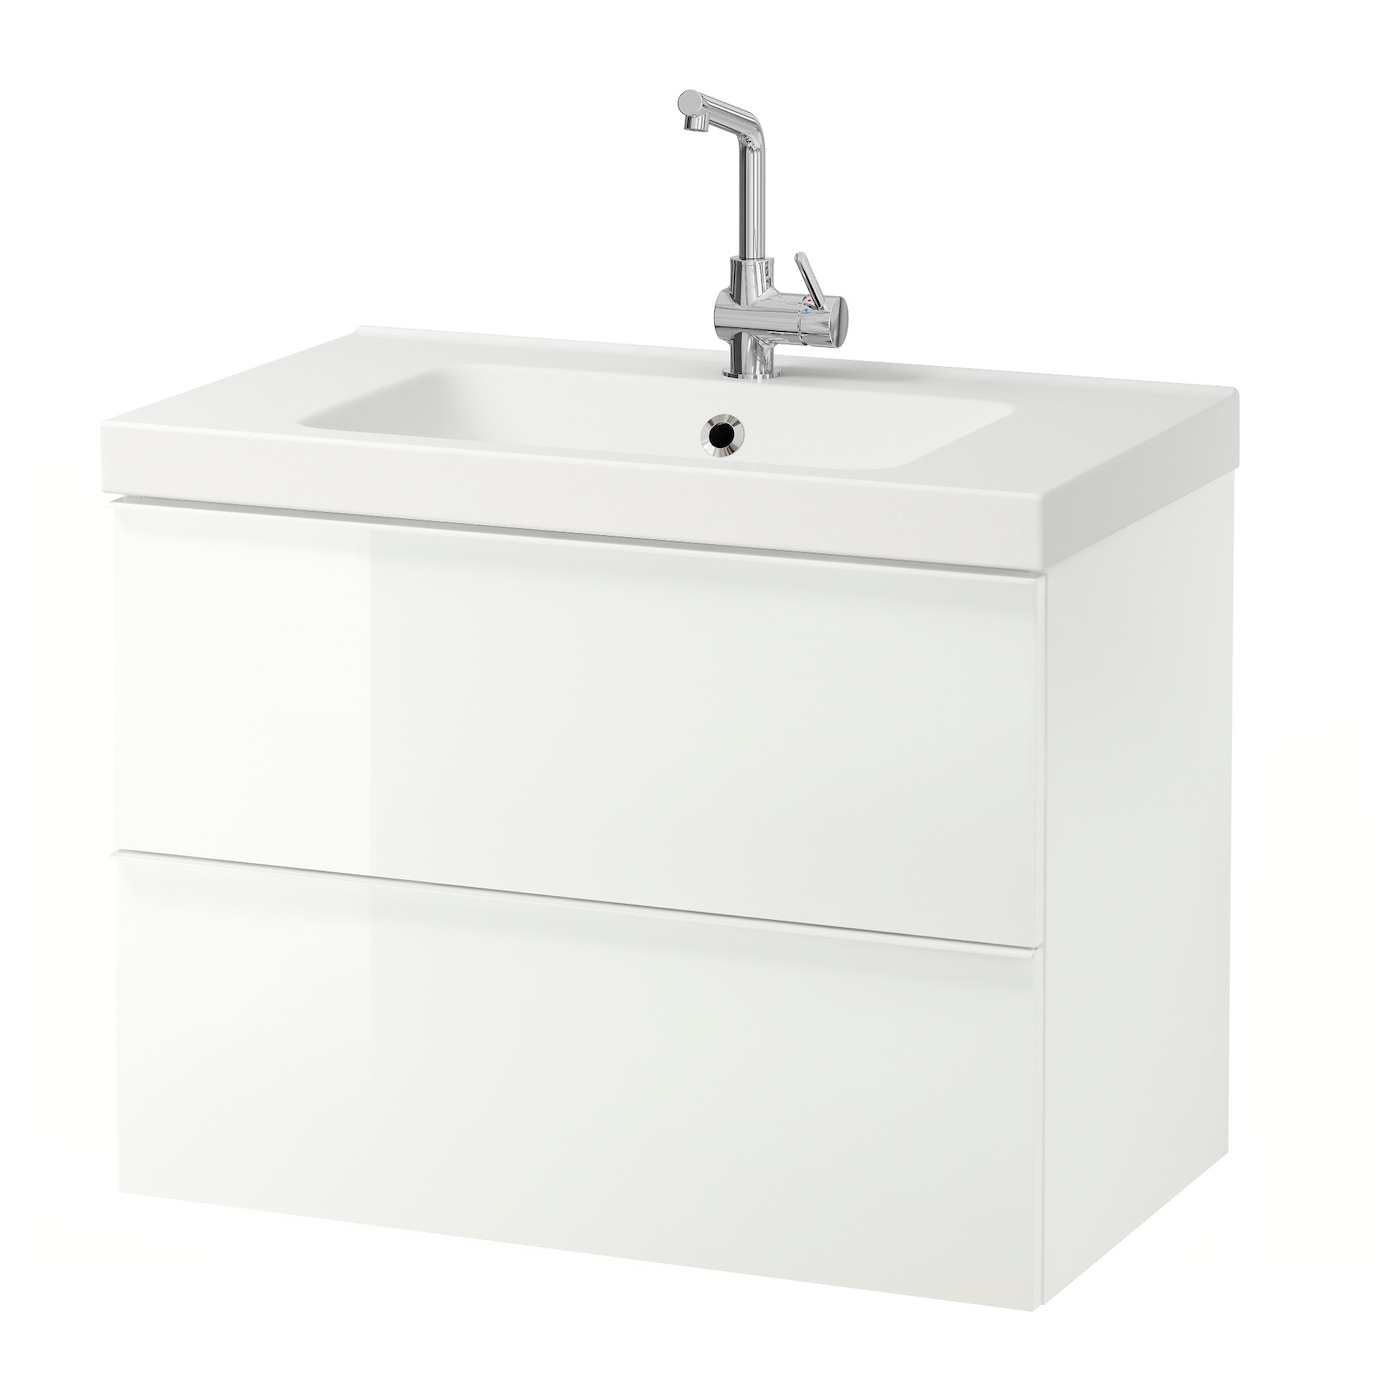 Odensvik godmorgon meuble lavabo 2tir brillant blanc for Meuble blanc ikea